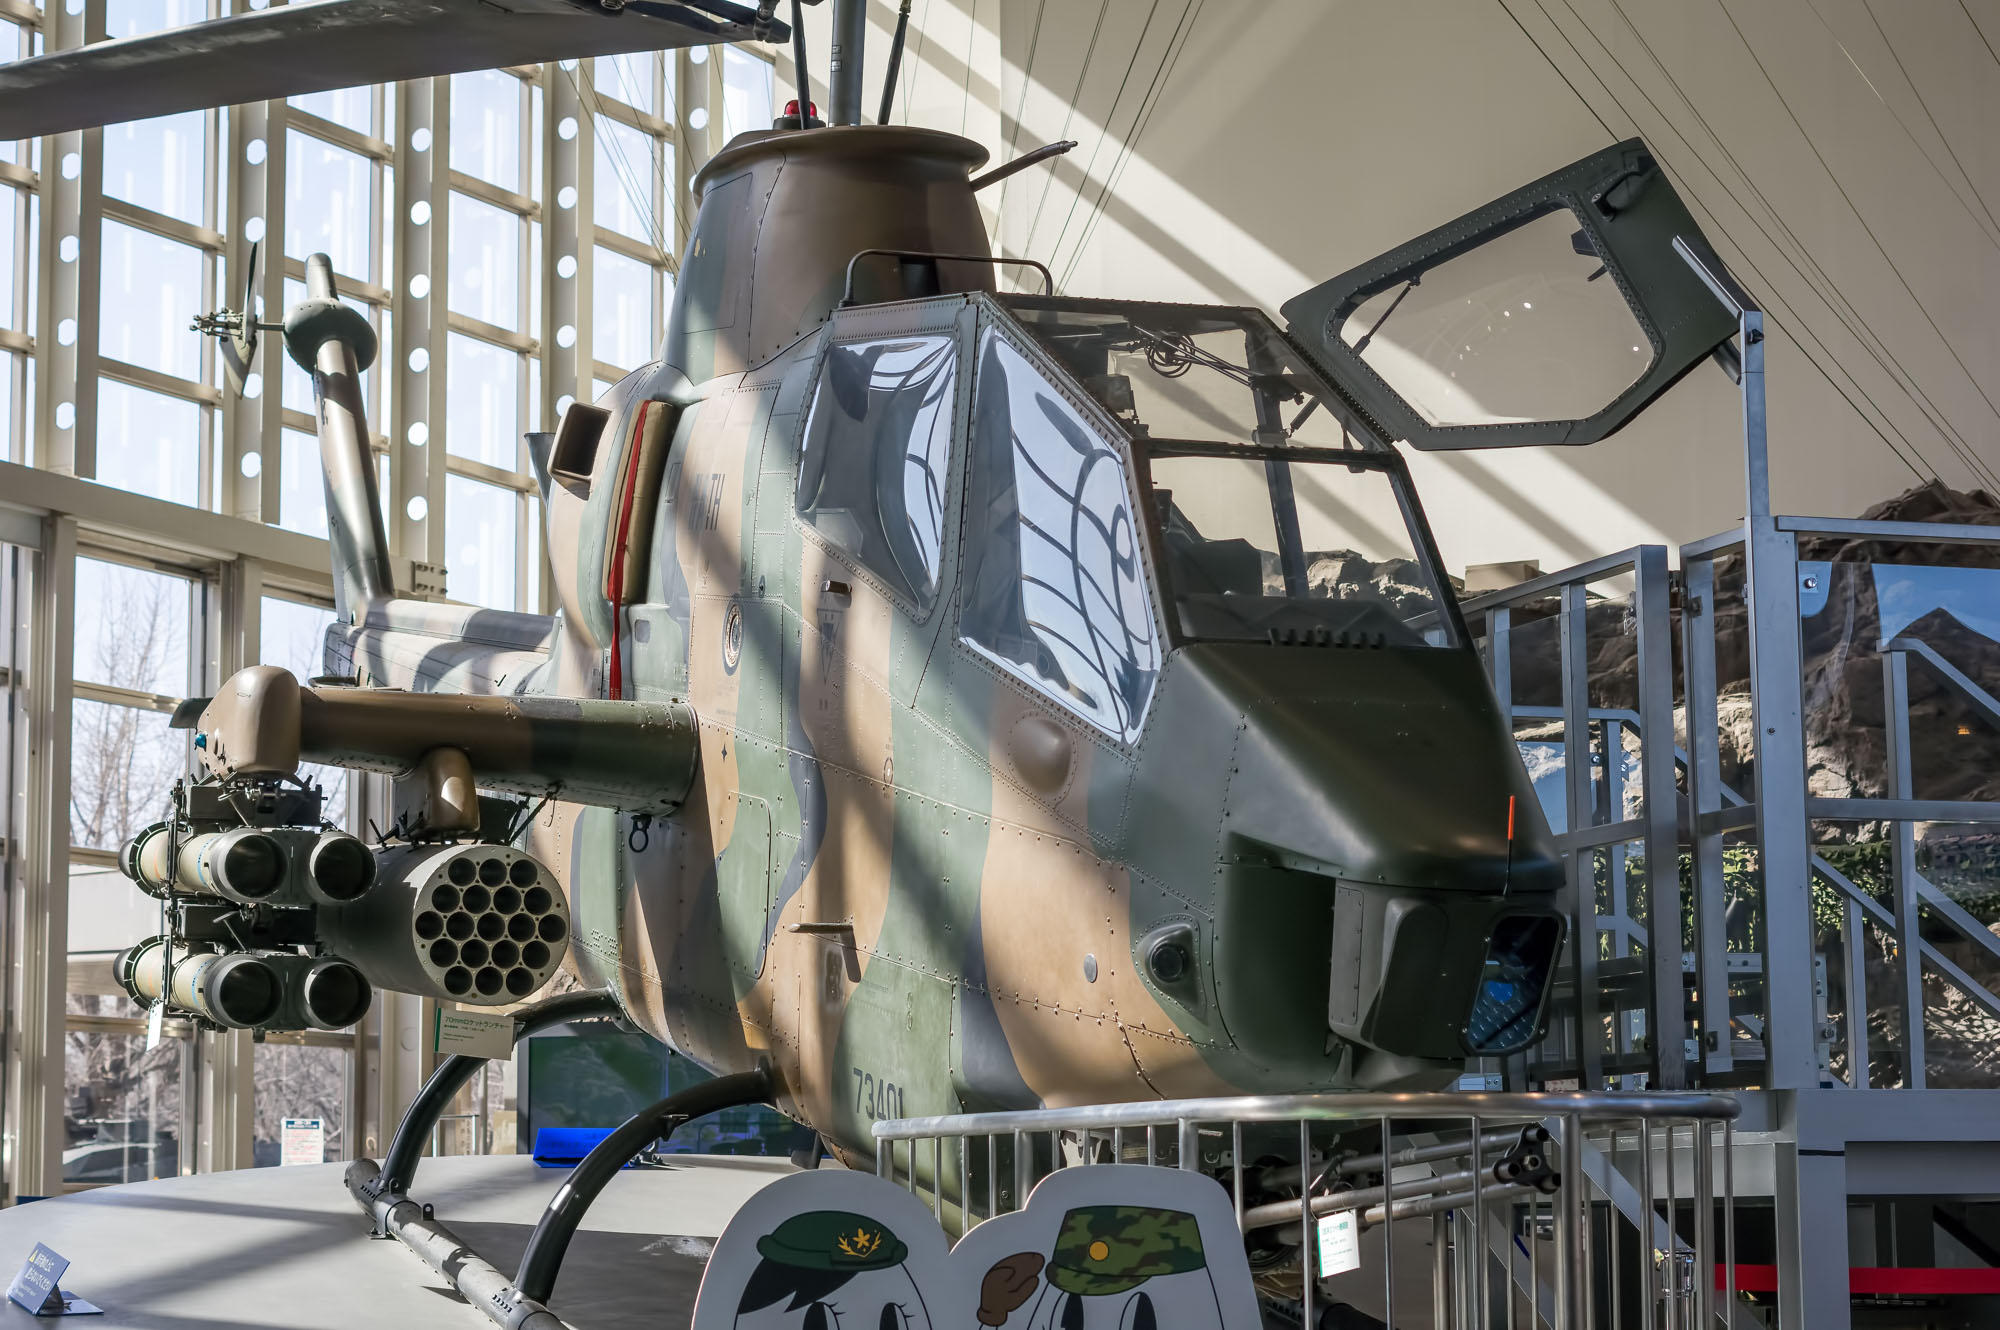 A closeup of the Bell AH-1 Cobra attack helicopter